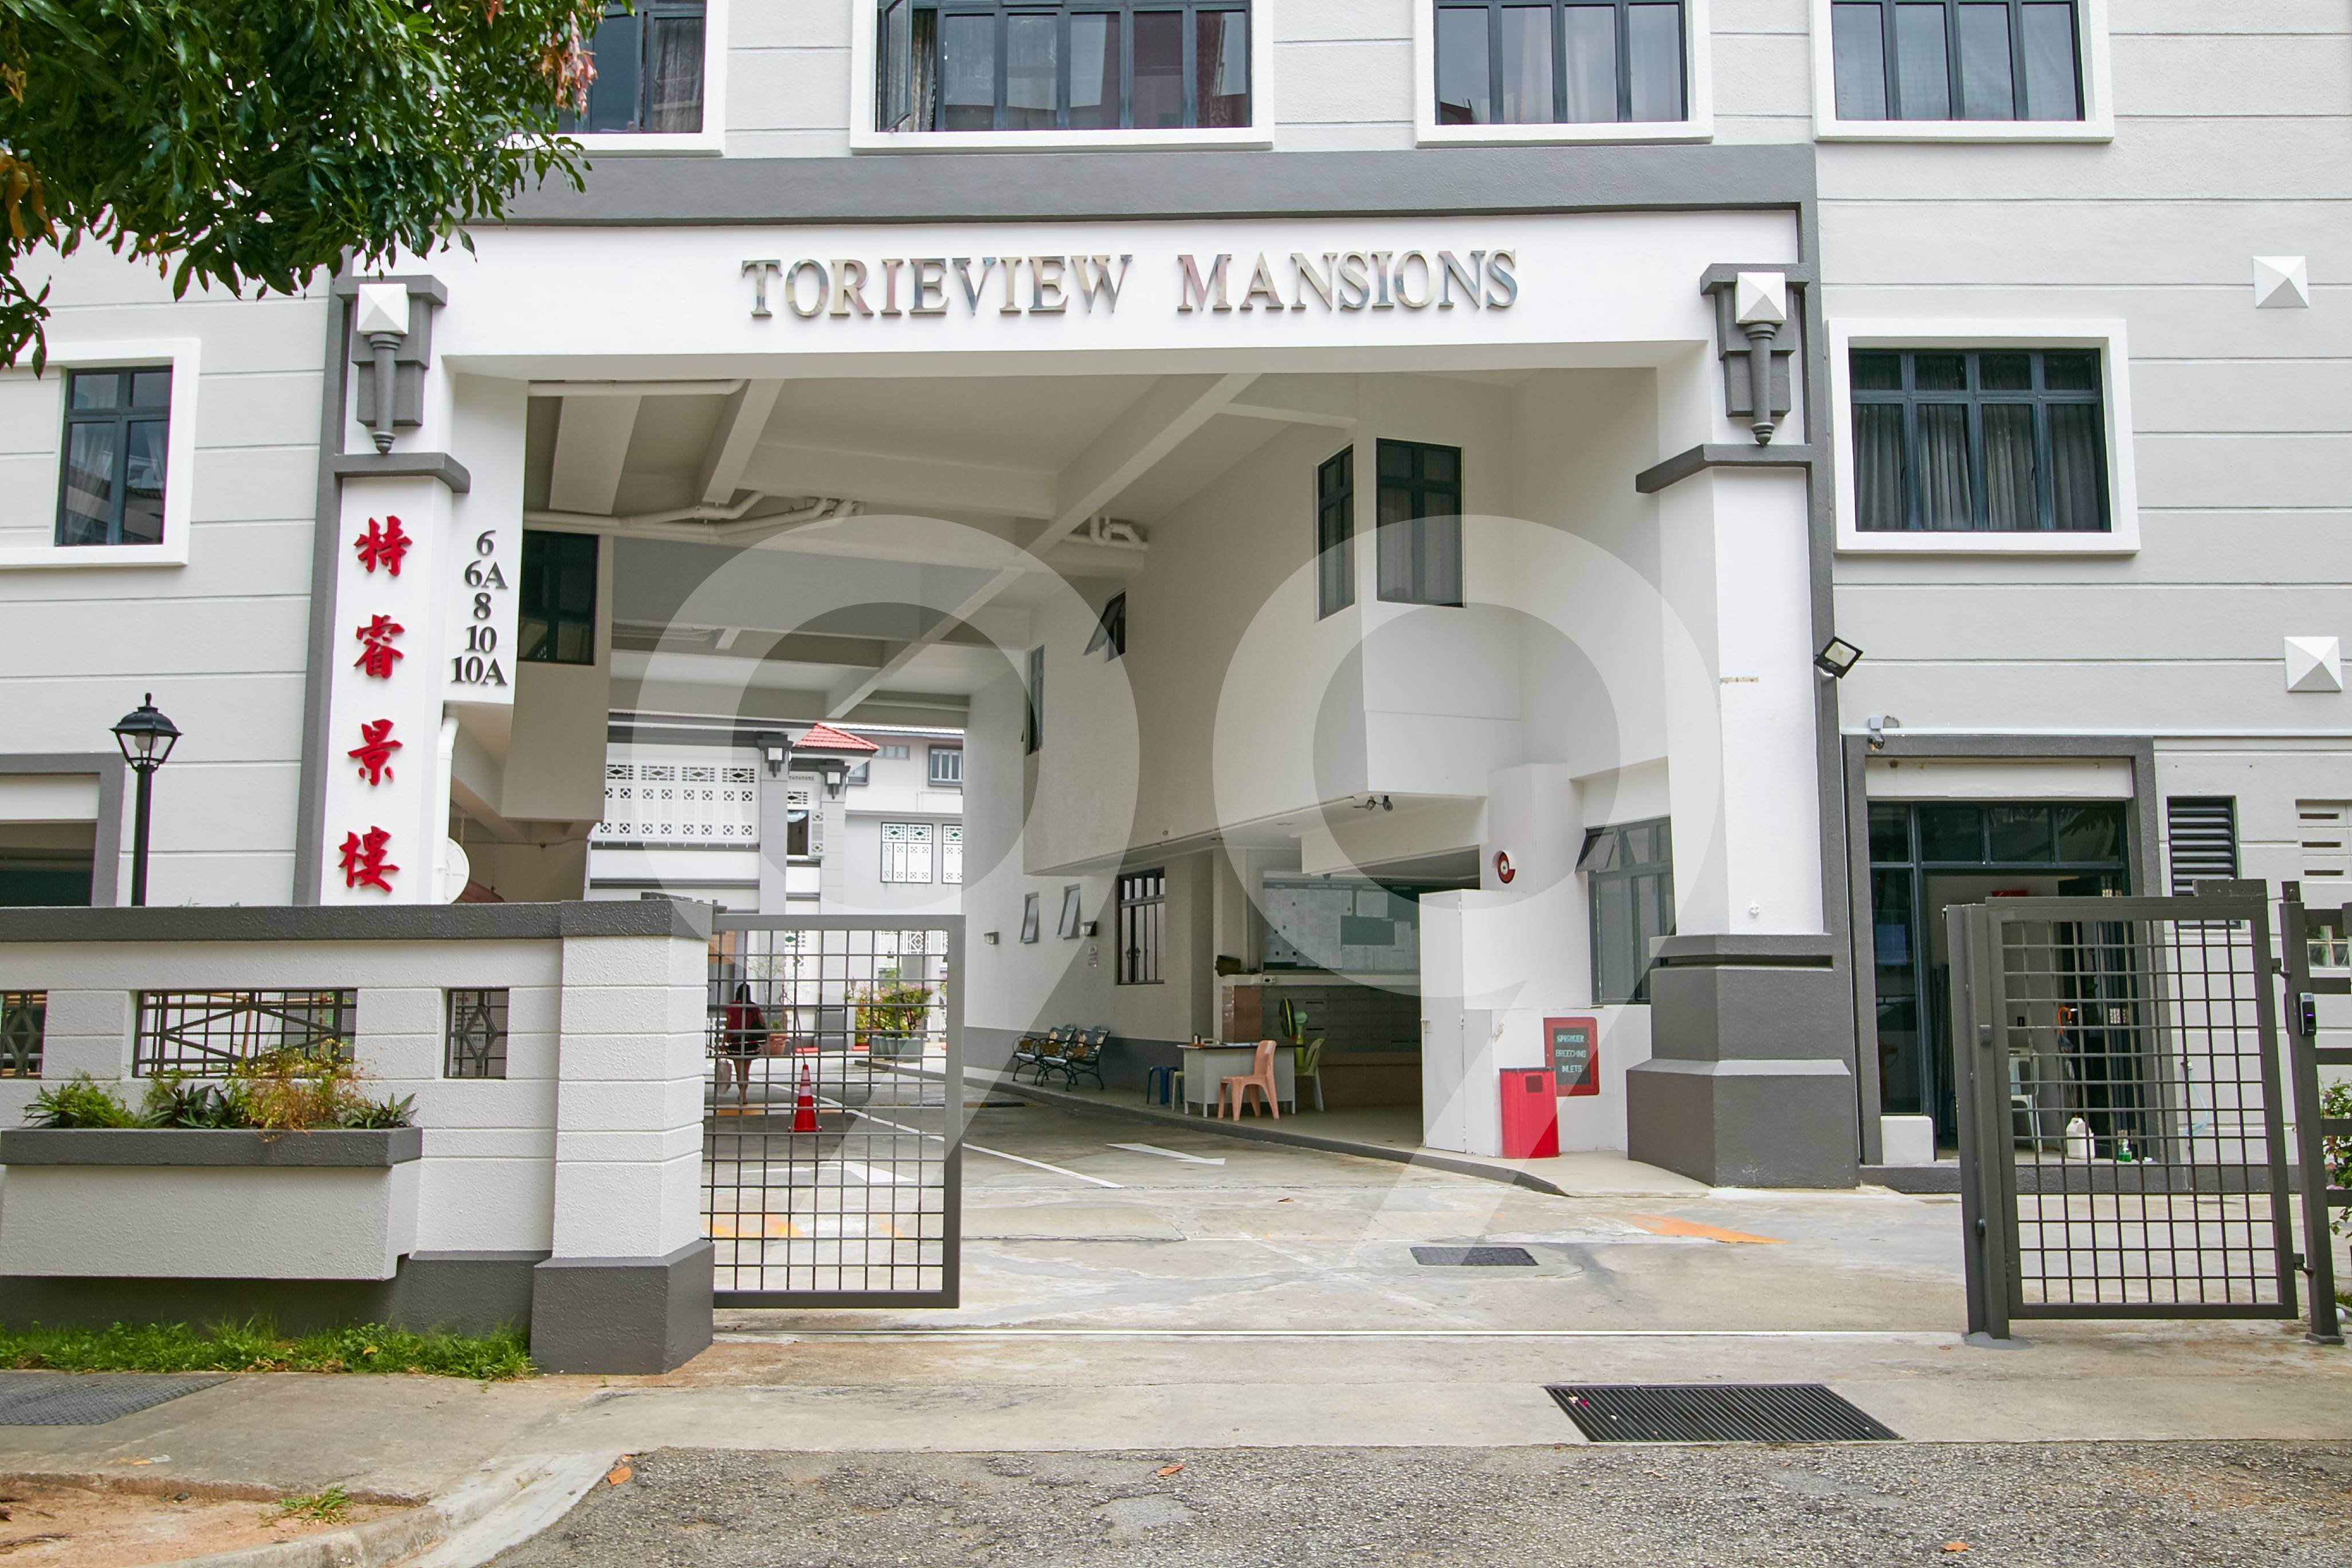 Torieview Mansions